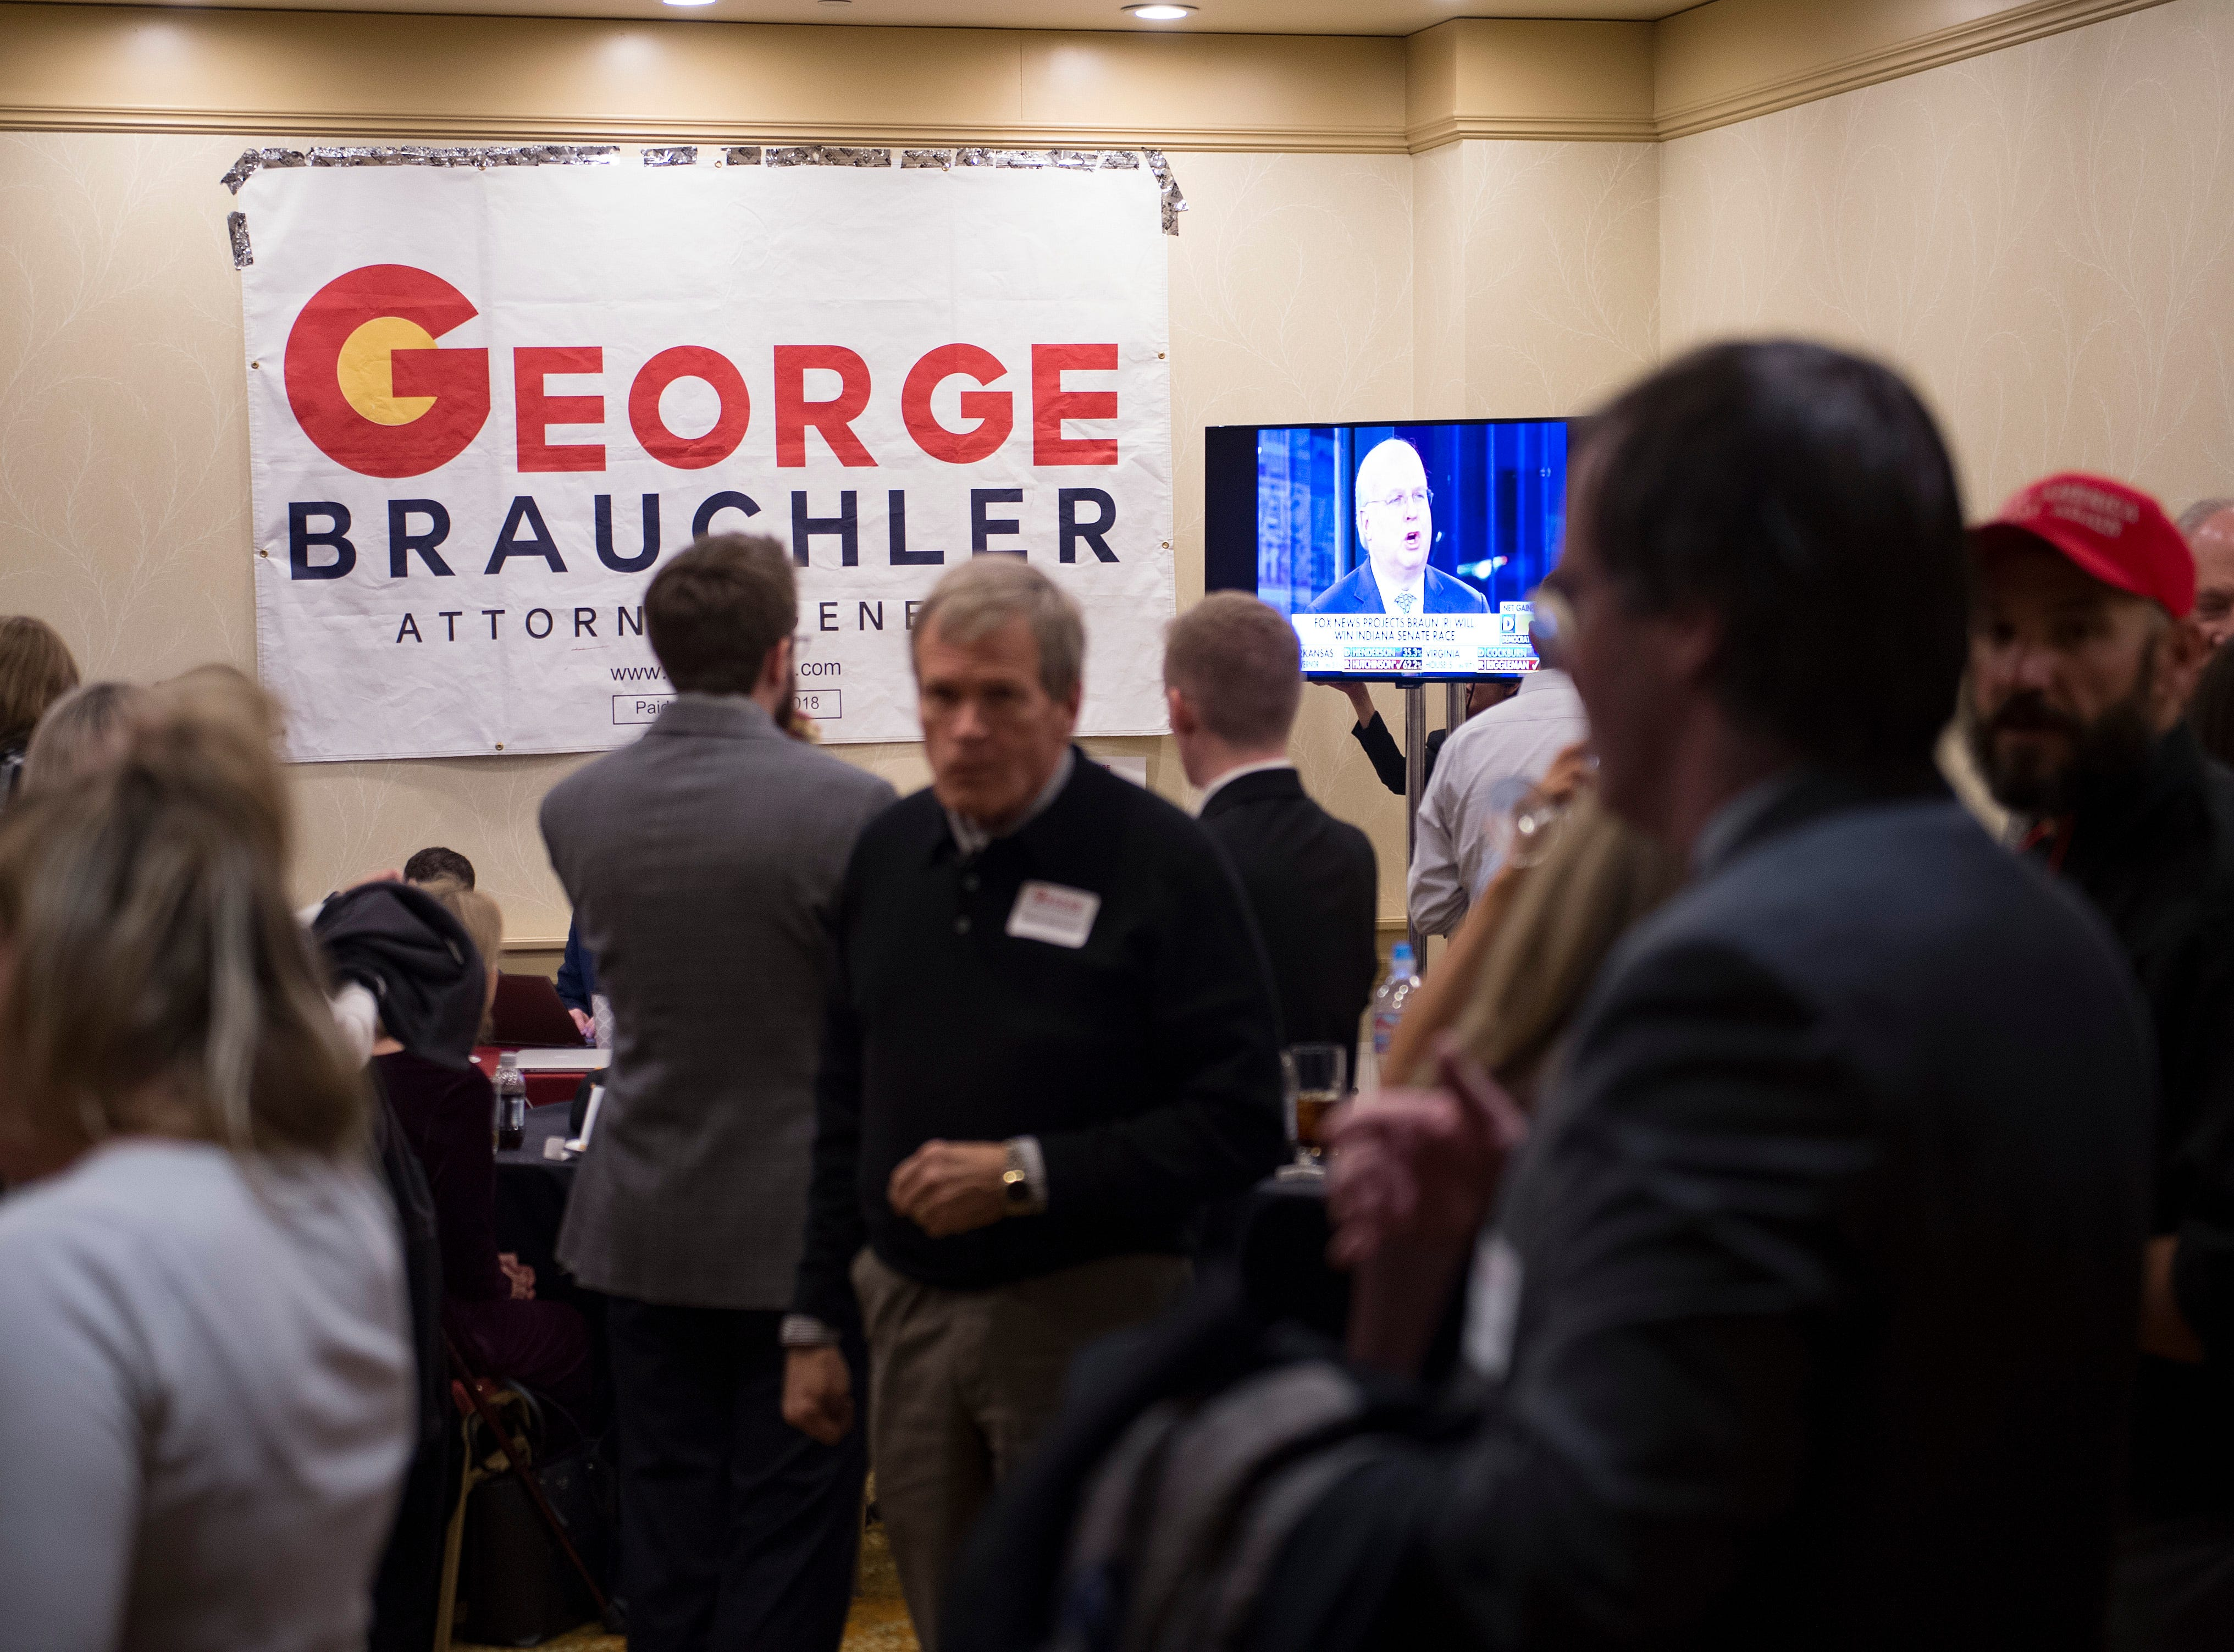 Supporters of Colorado attorney general candidate George Brauchler gather during a Colorado GOP watch party at the Denver Marriott South at Park Meadows in Lone Tree on Election Day, Tuesday, November 6, 2018.